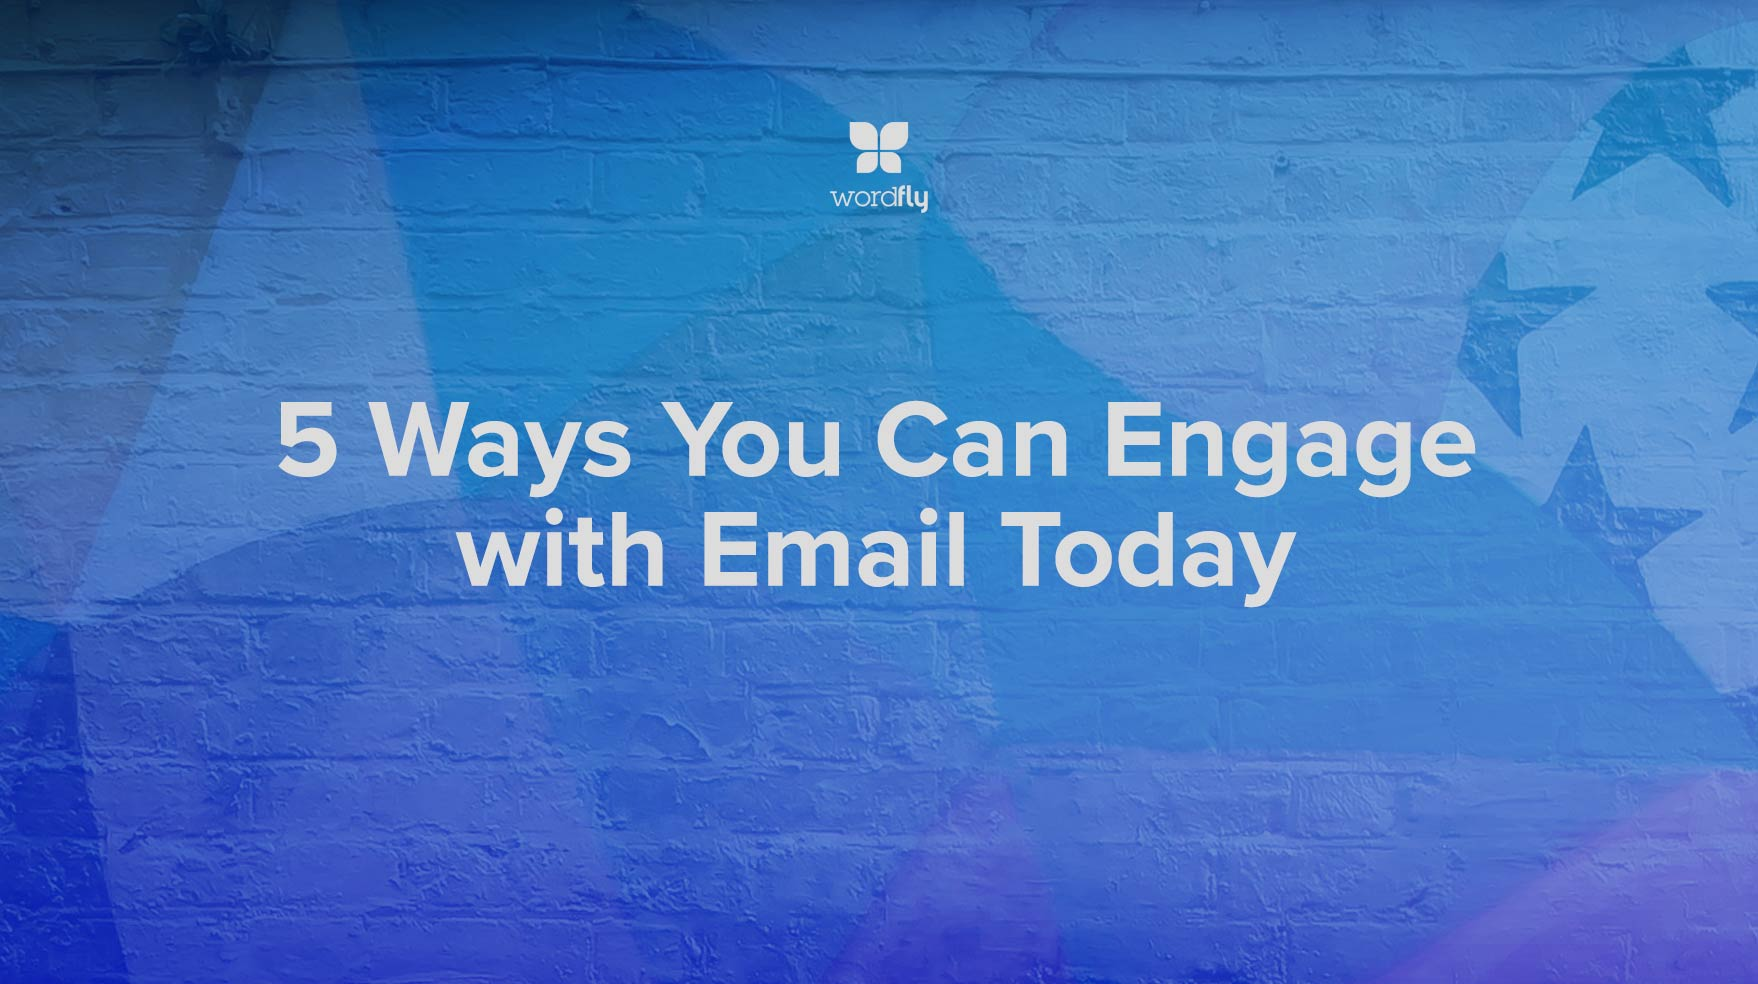 5 Ways You Can Engage with Email Today